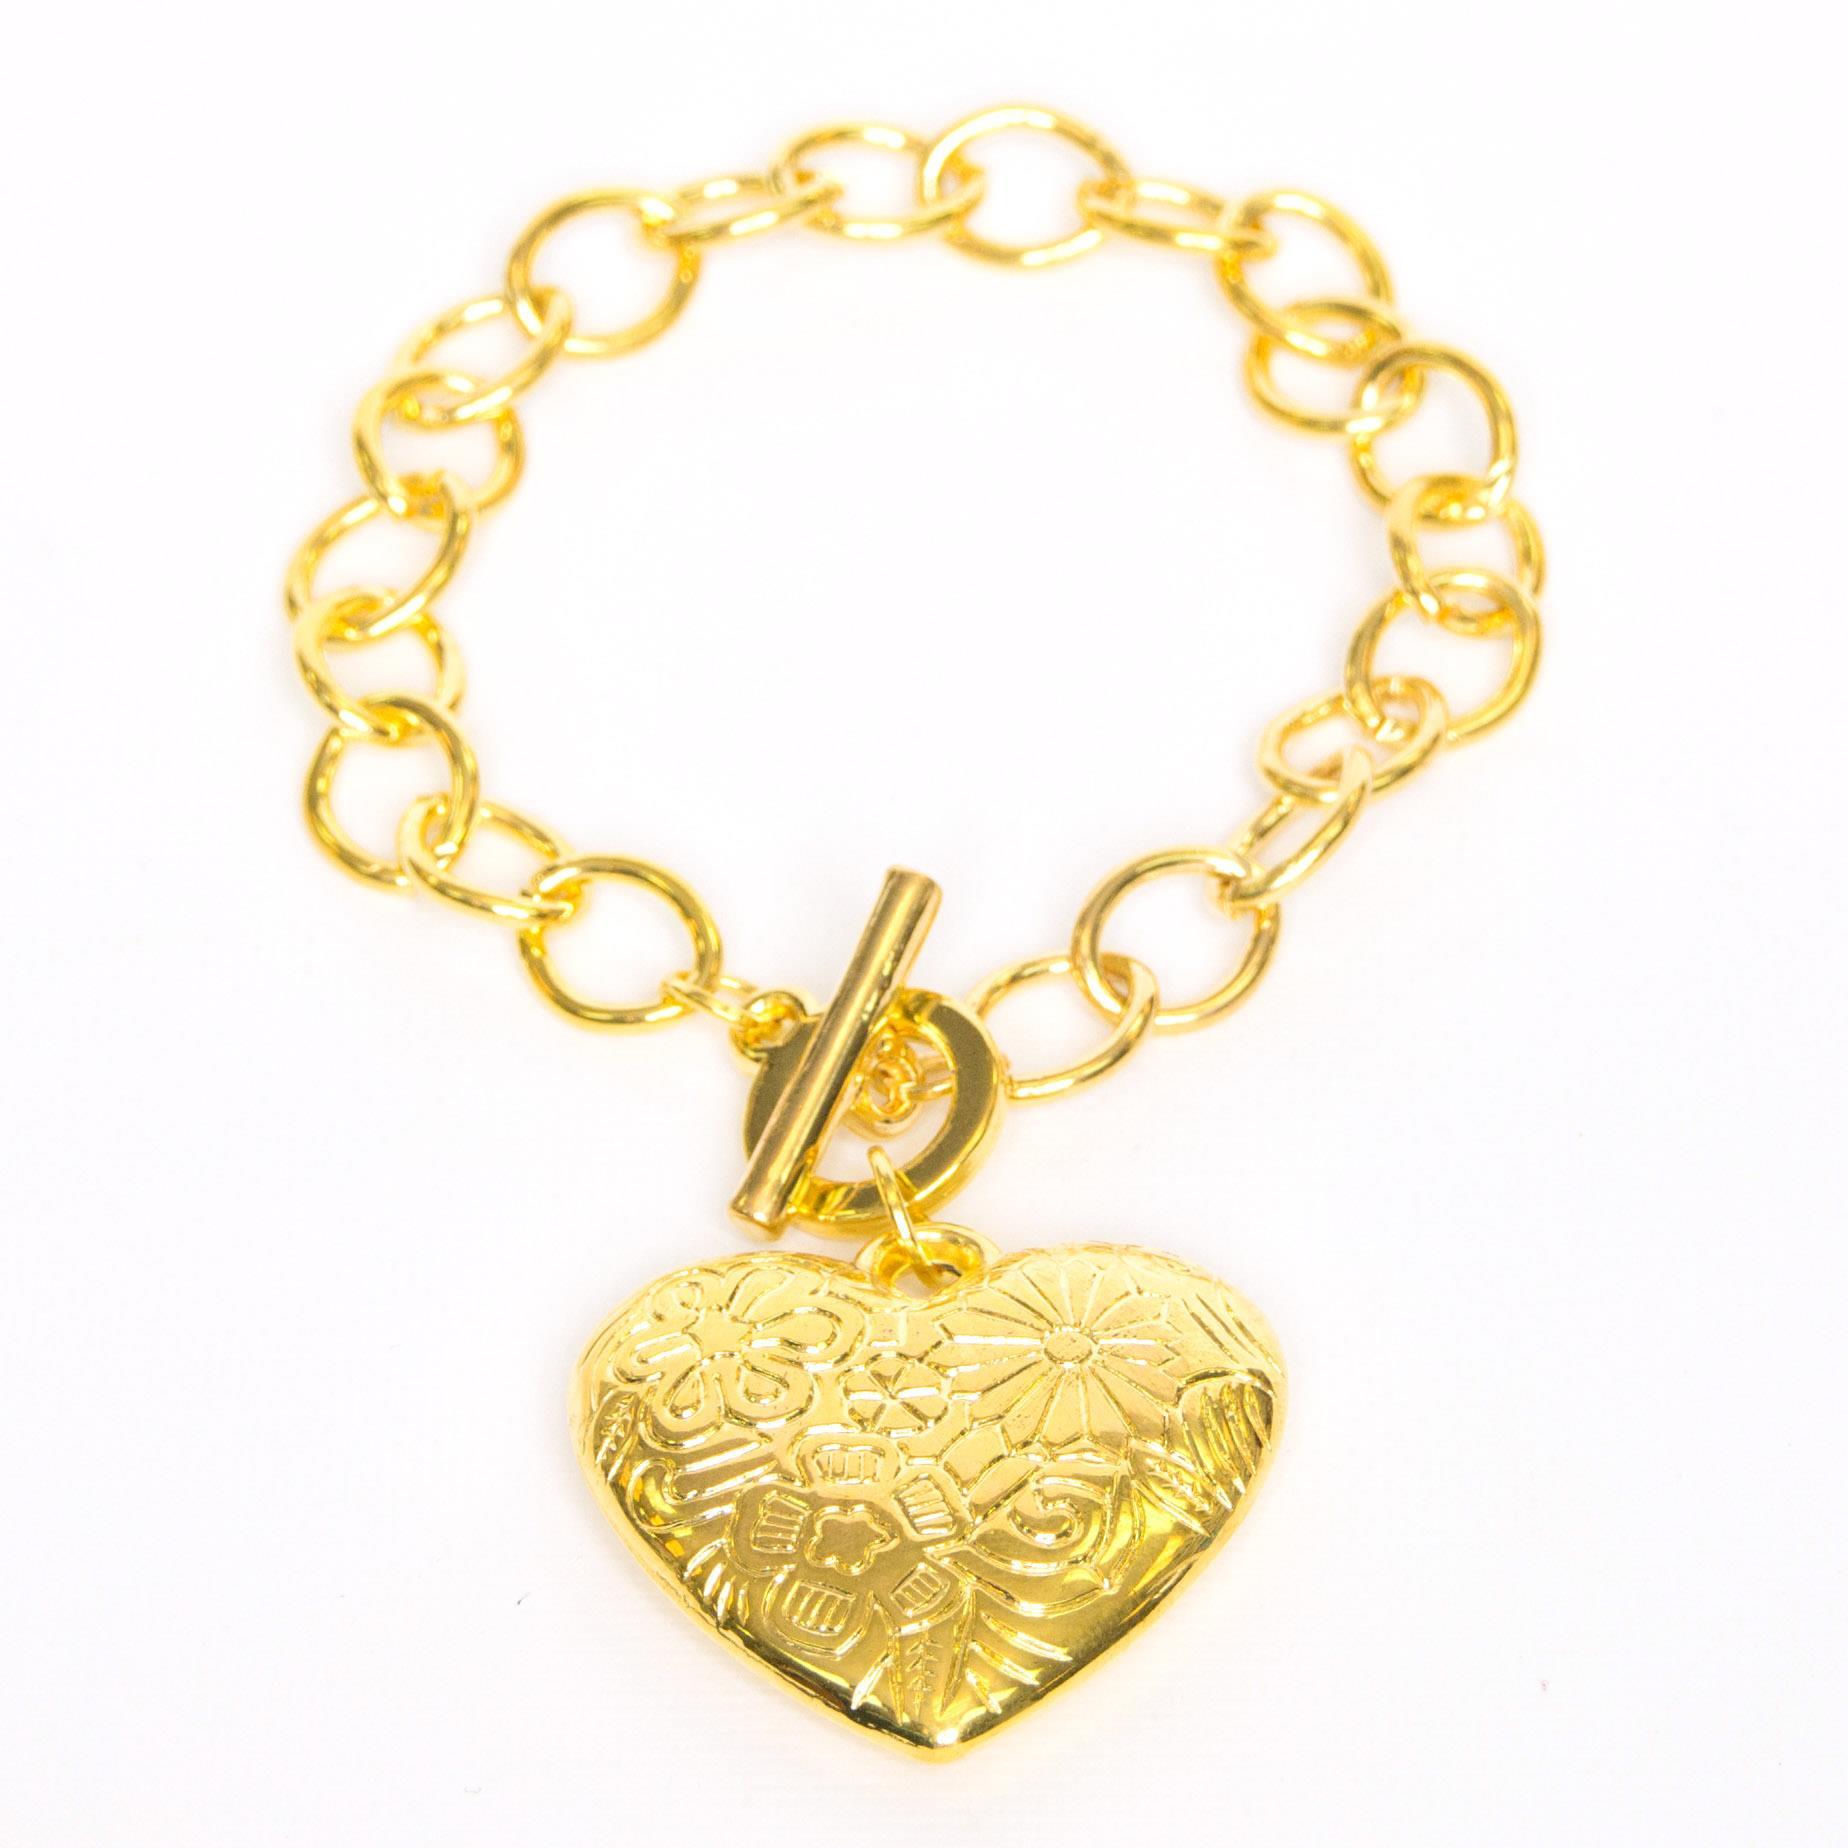 Single Heart Bracelet - Gold